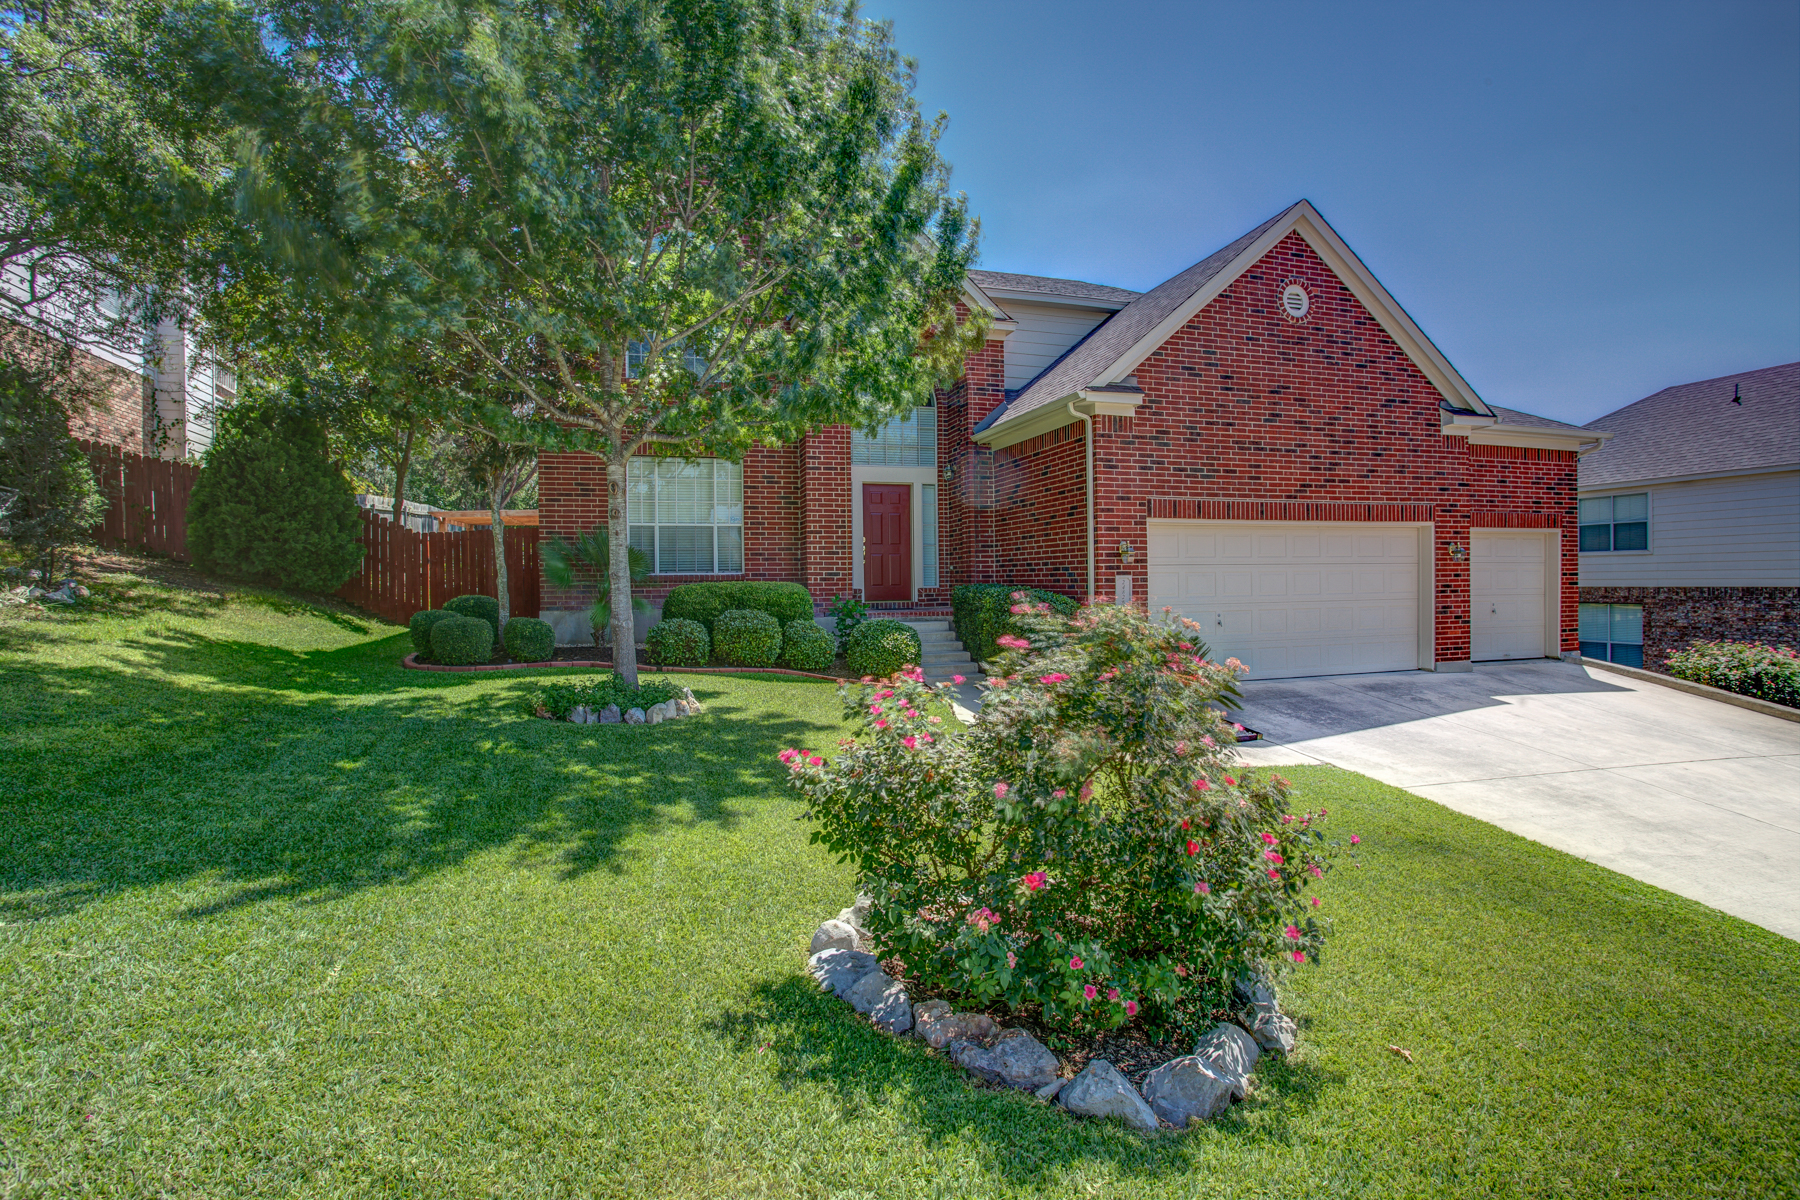 Single Family Home for Sale at Lovely Home in the Estates at Arrowhead 24826 Twin Arrows San Antonio, Texas 78256 United States